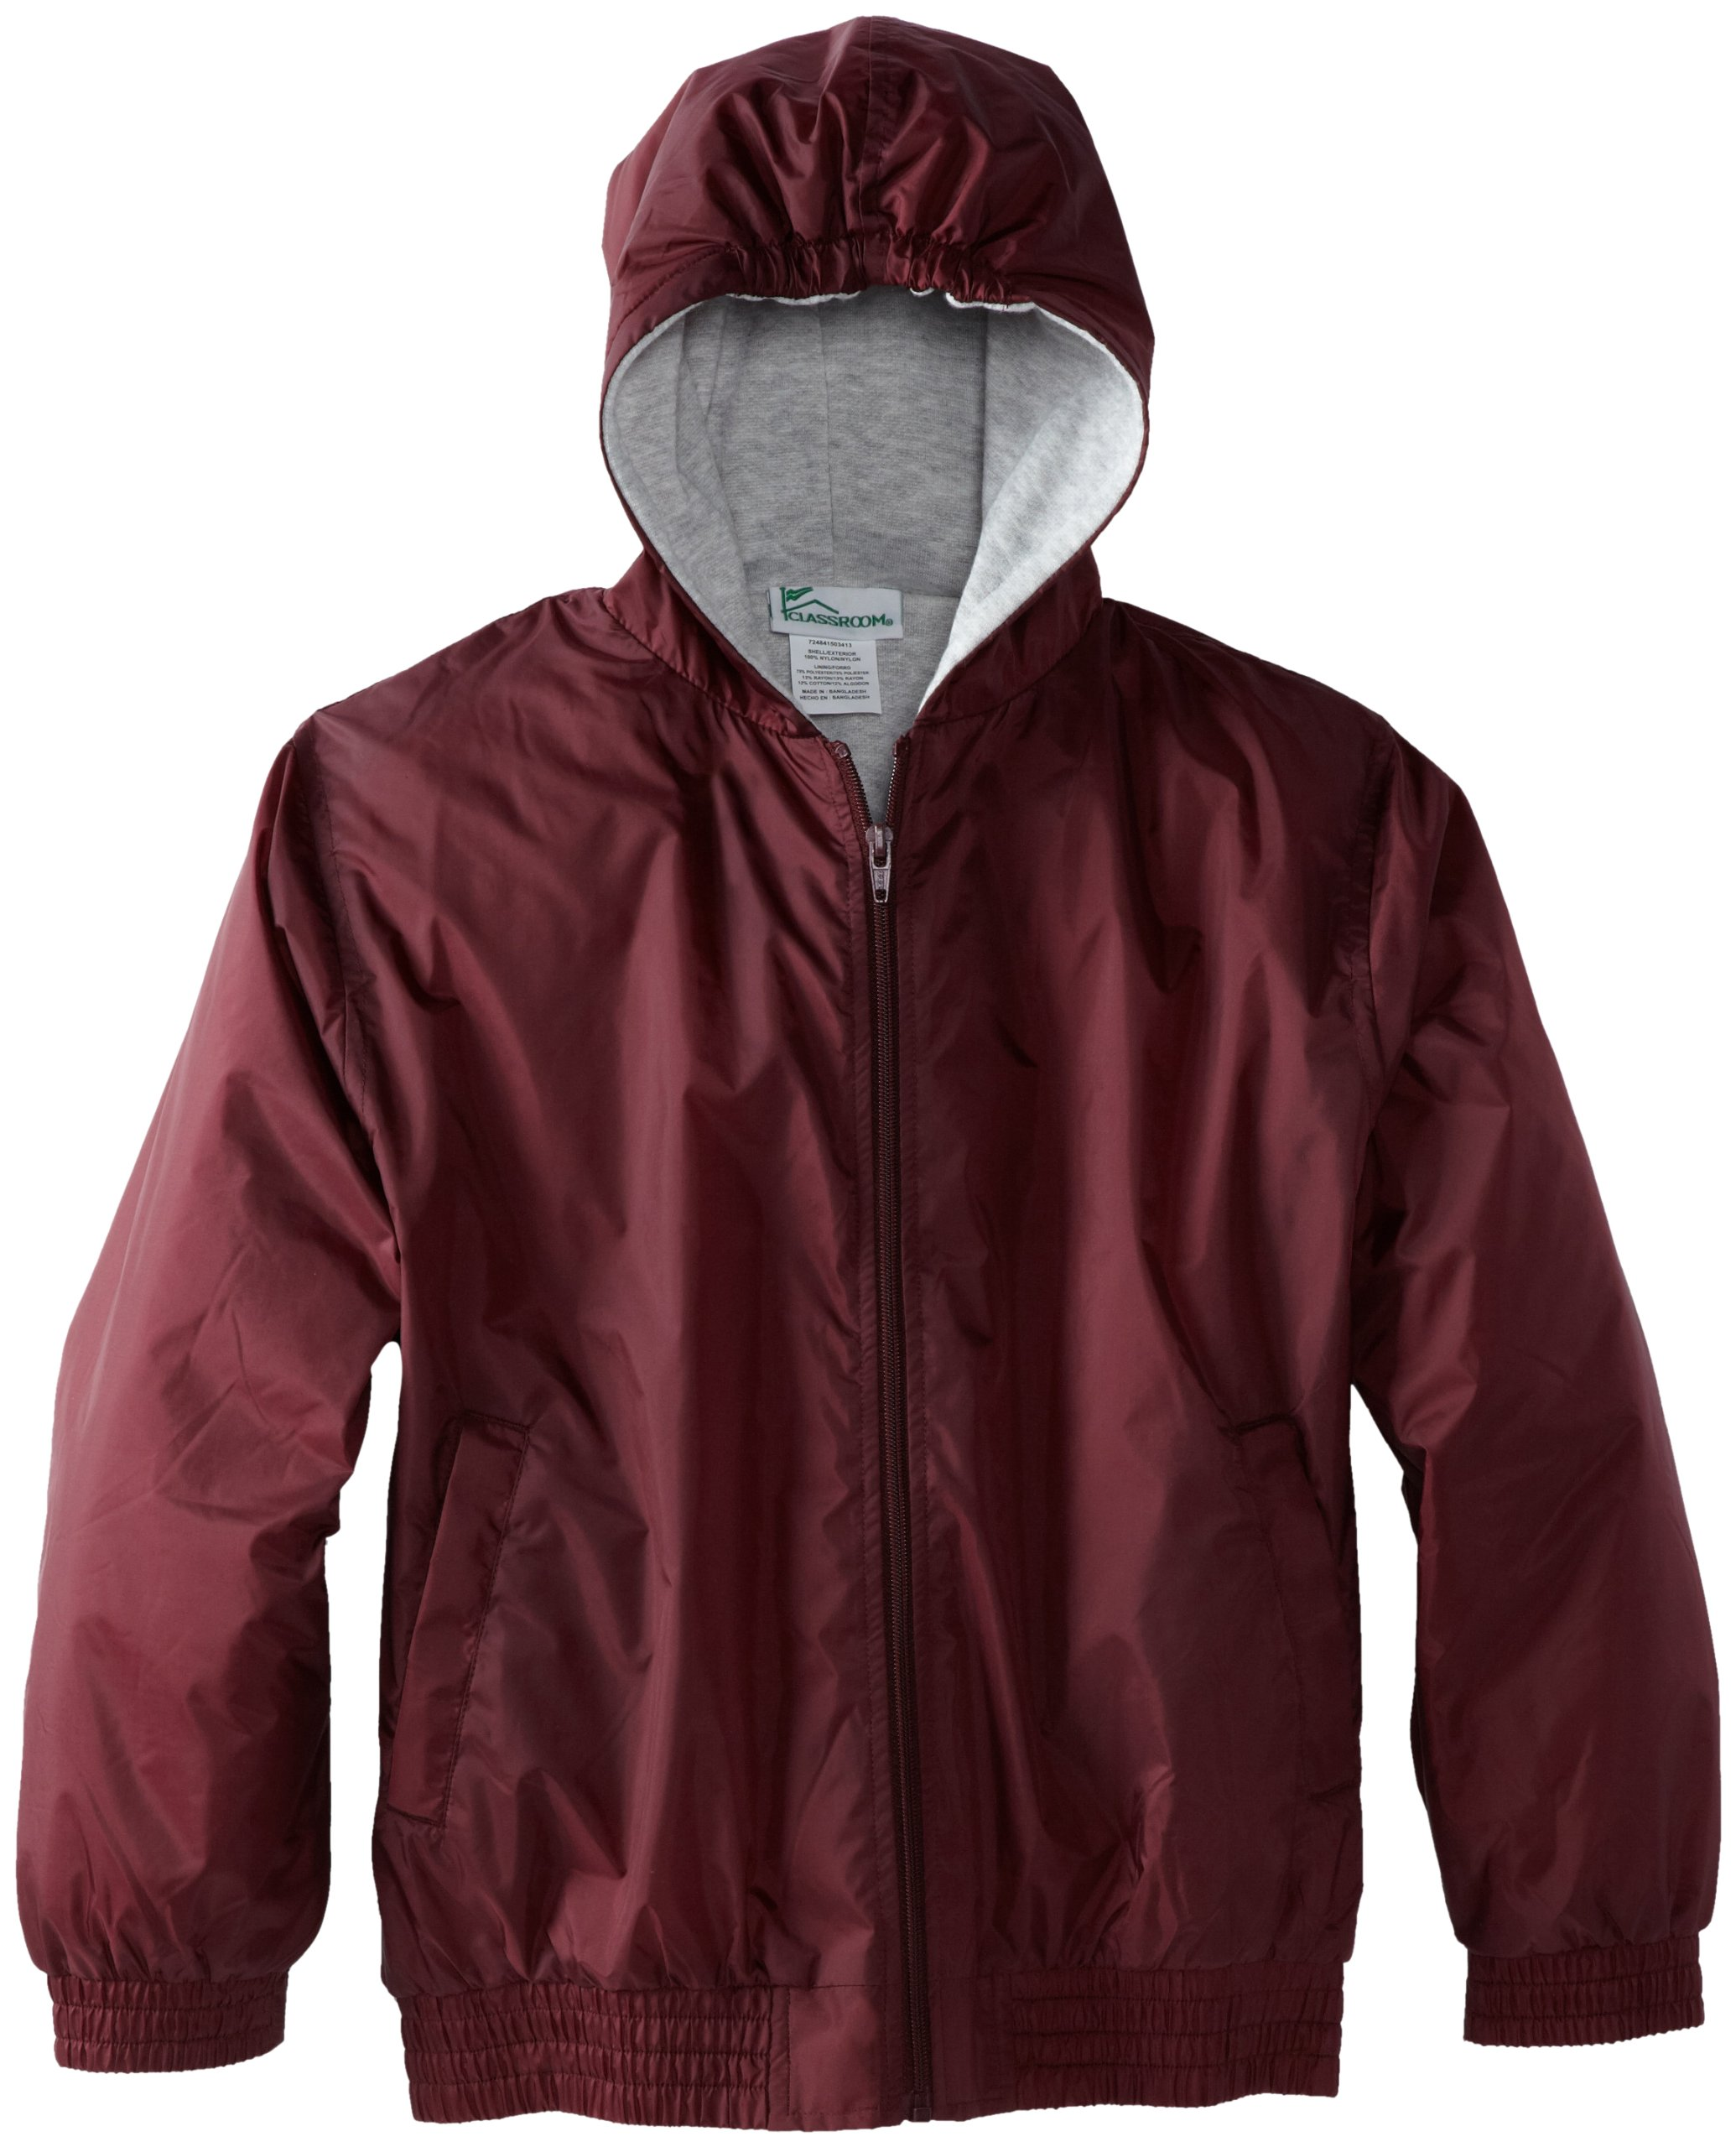 CLASSROOM Big Boys' Uniform Lined Bomber Jacket, Burgundy, Large by Classroom Uniforms (Image #1)